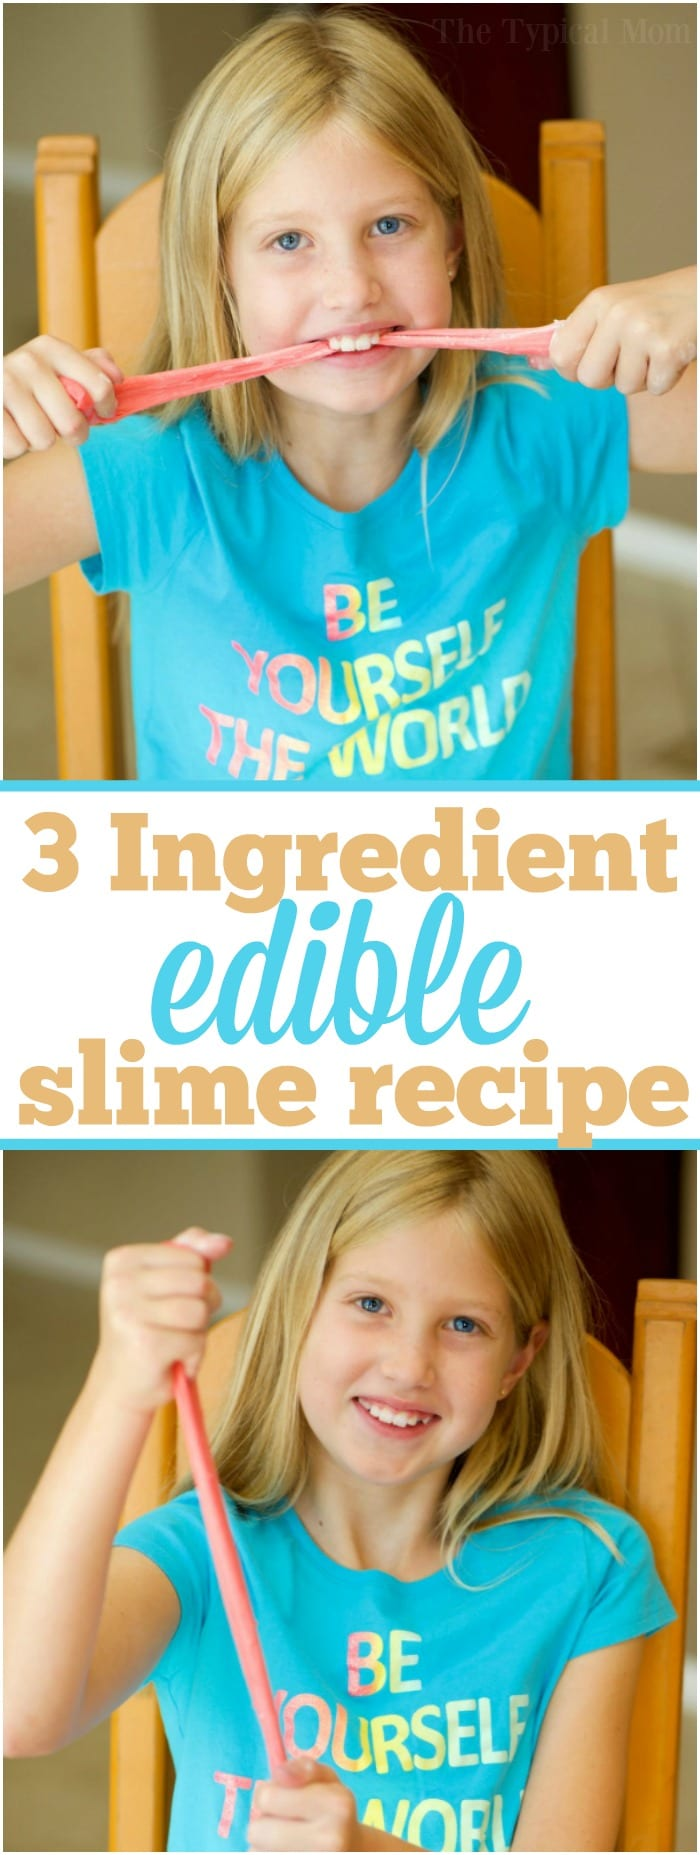 If you're wondering how to make edible slime you only really need 3 ingredients! This is an easy and safe slime recipe that you can eat and tastes great. Let your children create this one on their own and after some sticky fun they can have a treat when they're done. Best edible slime recipe ever. #edible #slime #recipe #safe #boraxfree #noborax #gummybear #easy #best